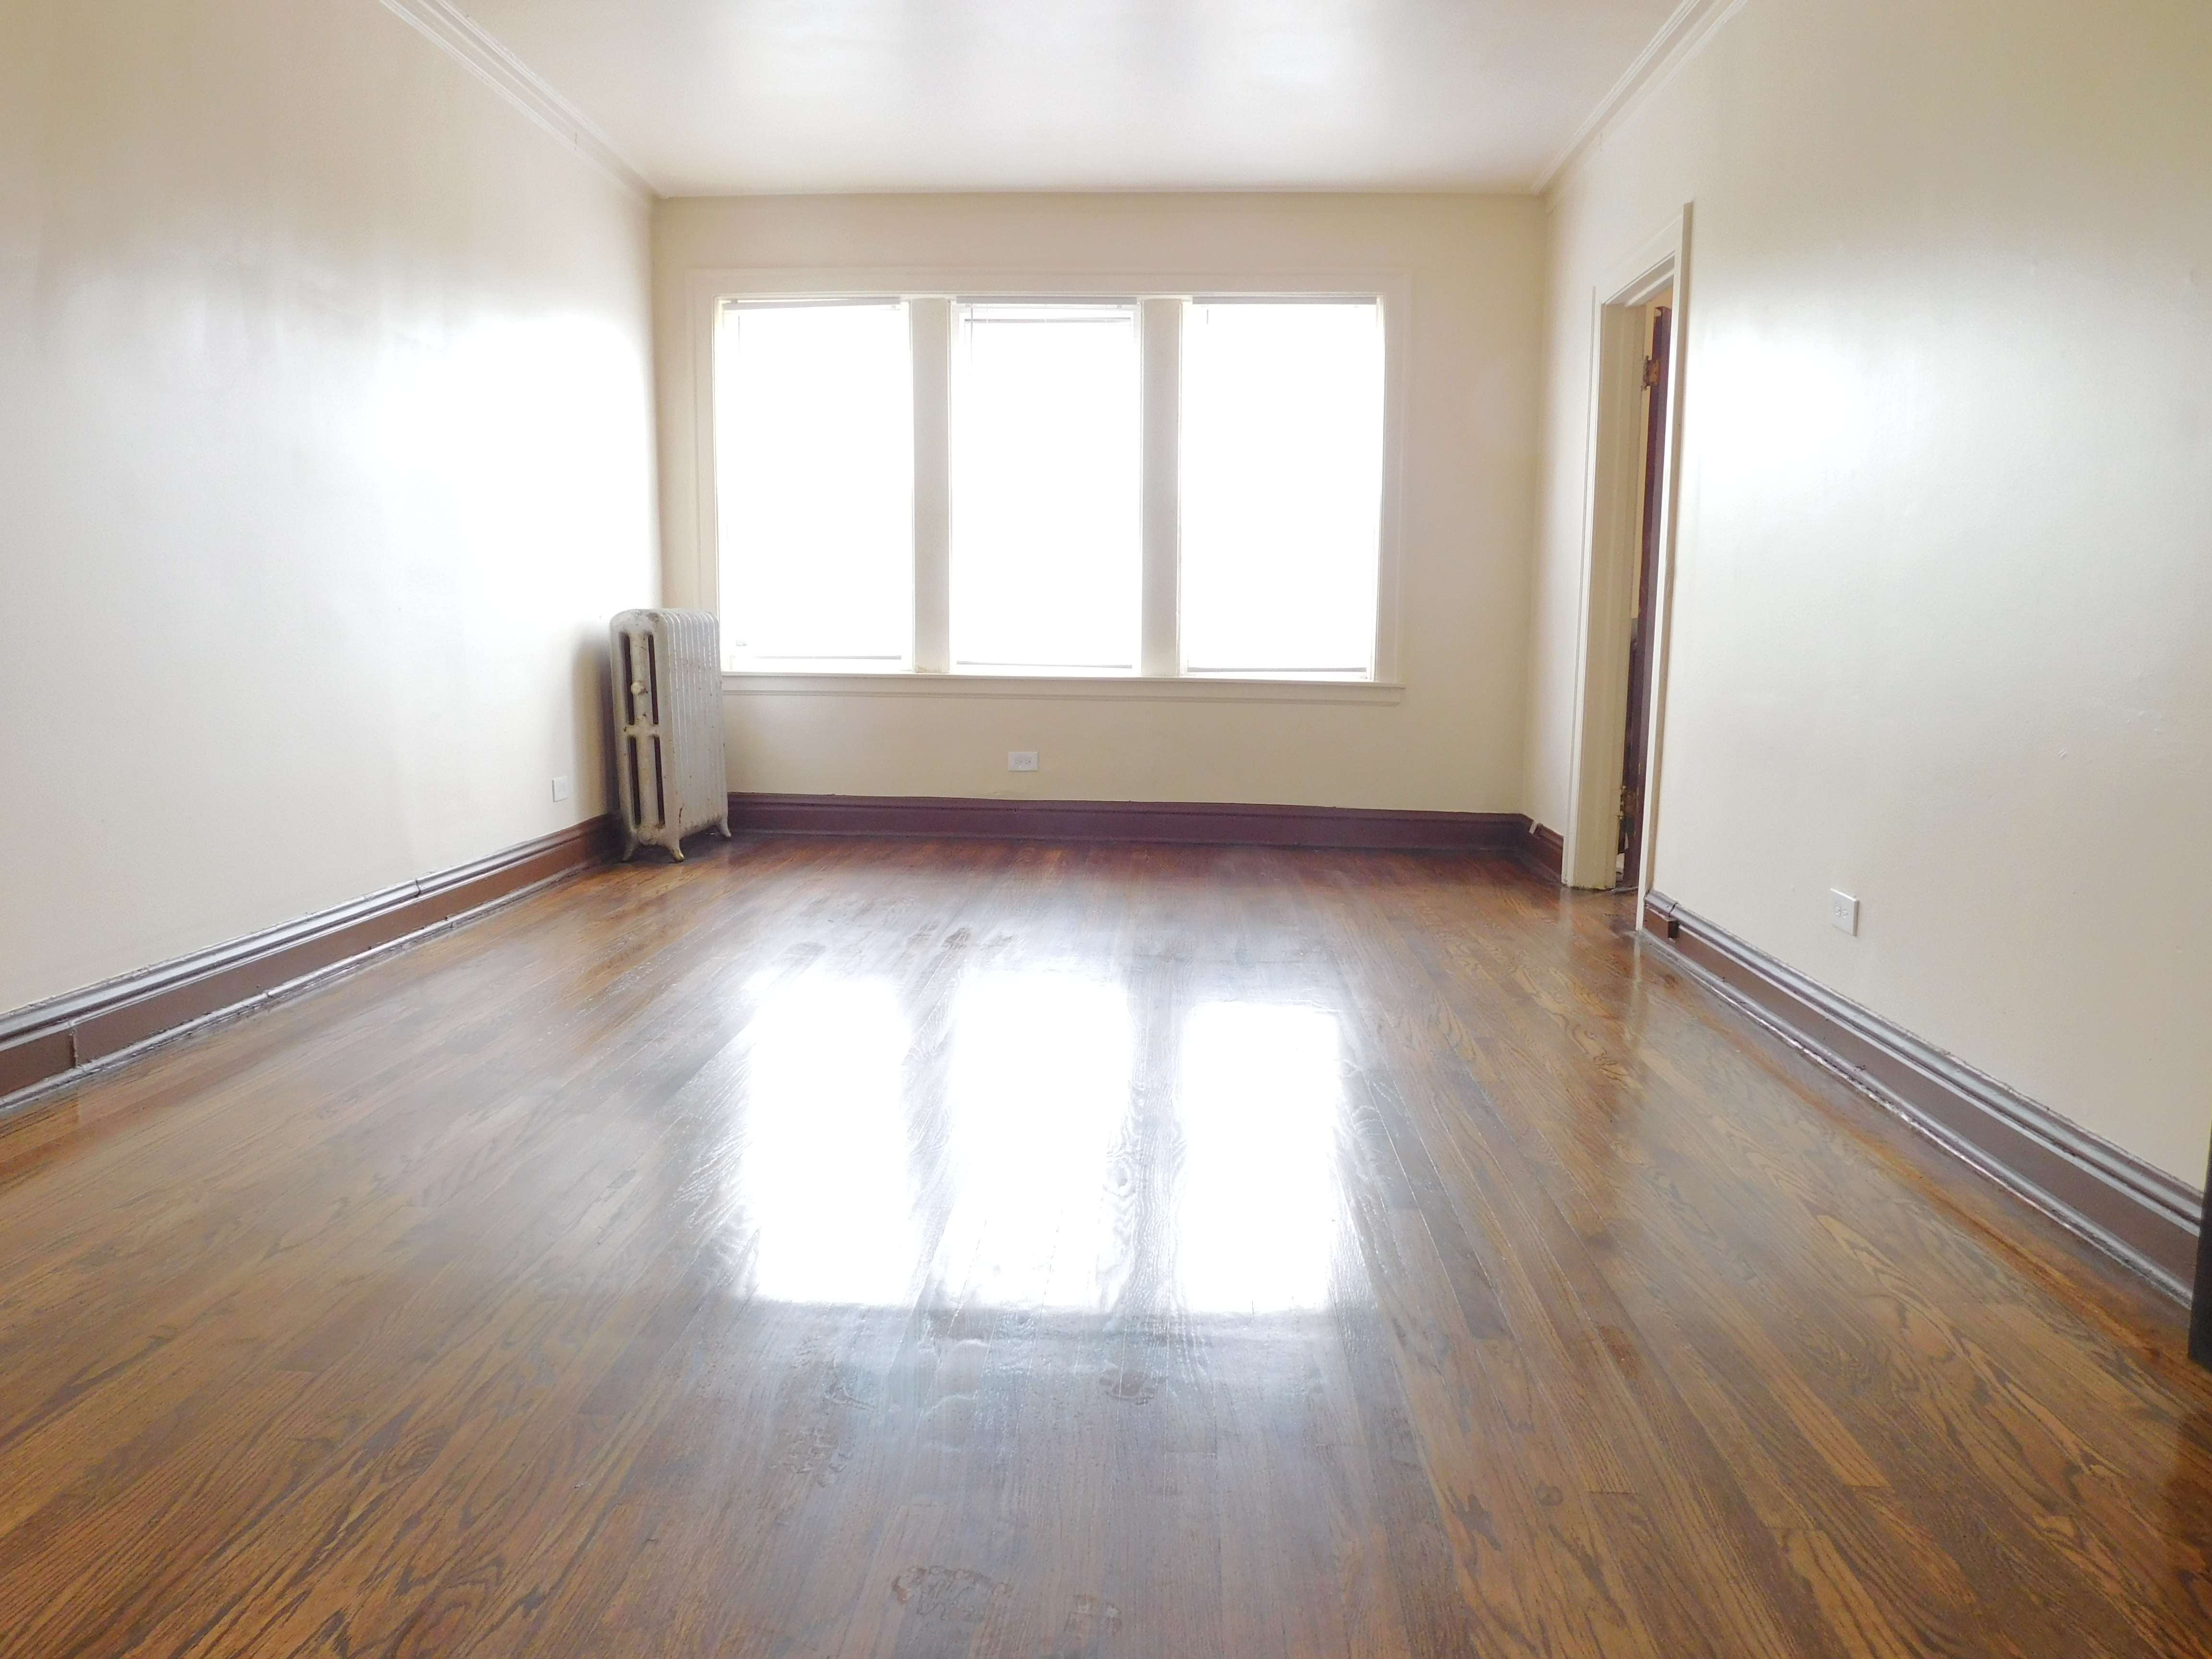 1 bedroom apartment in Austin Chicago - Living Room